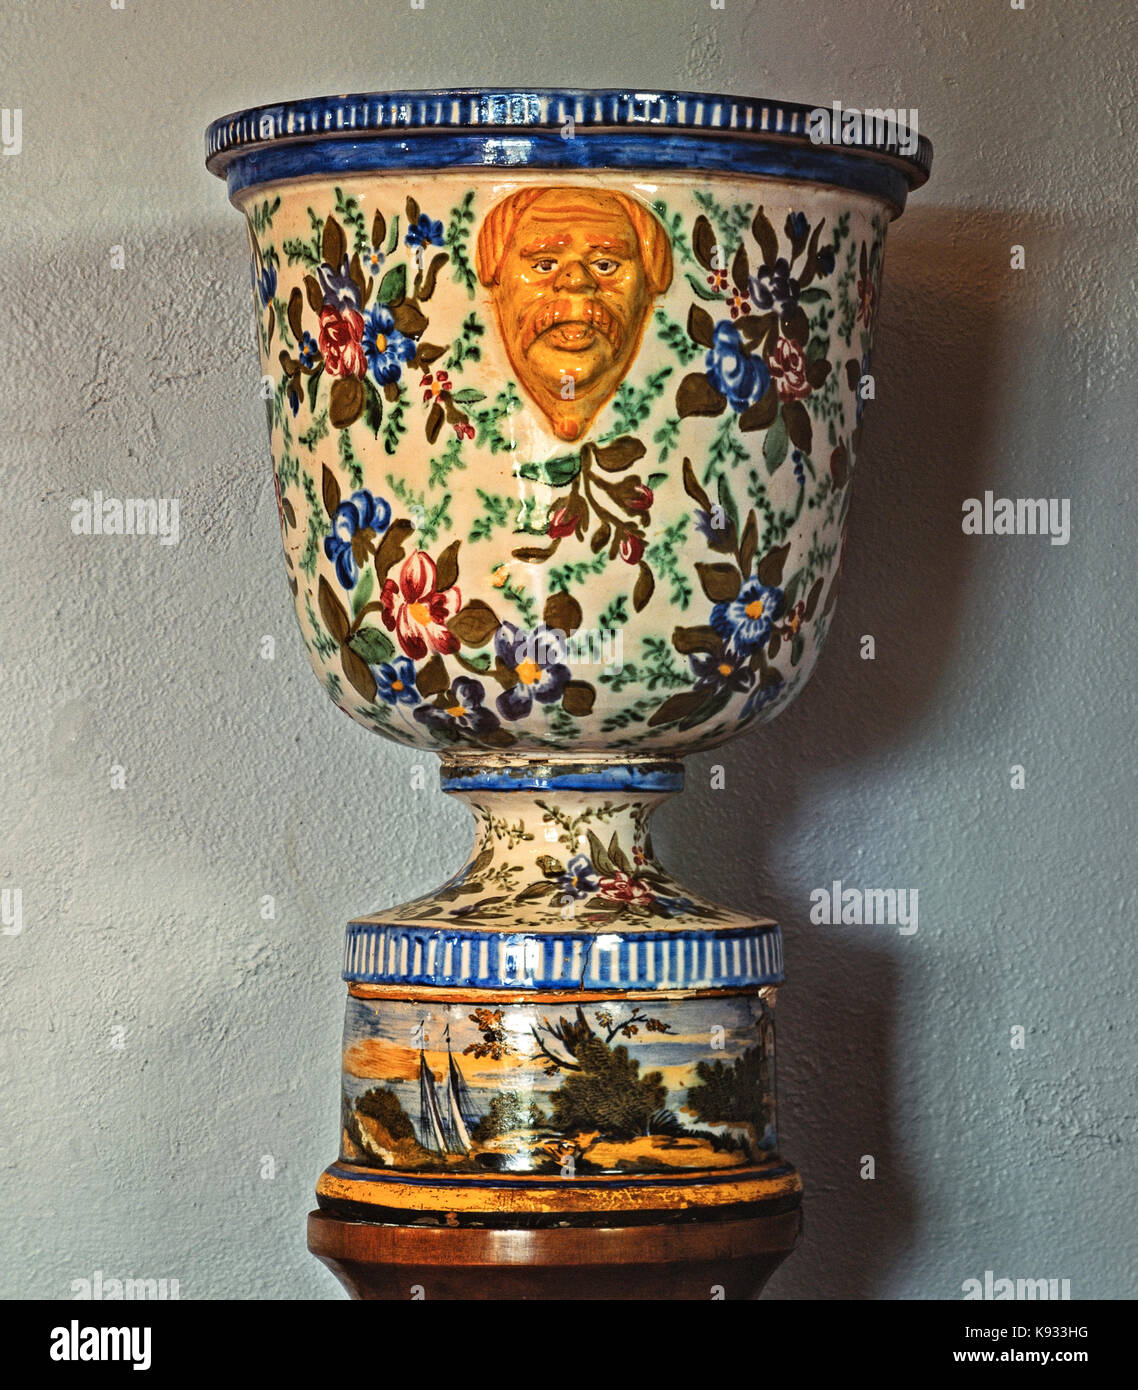 Face vase stock photos face vase stock images alamy italy abruzzo loreto aprutino acerbo ceramic museum vase with a mans face with mustache reviewsmspy